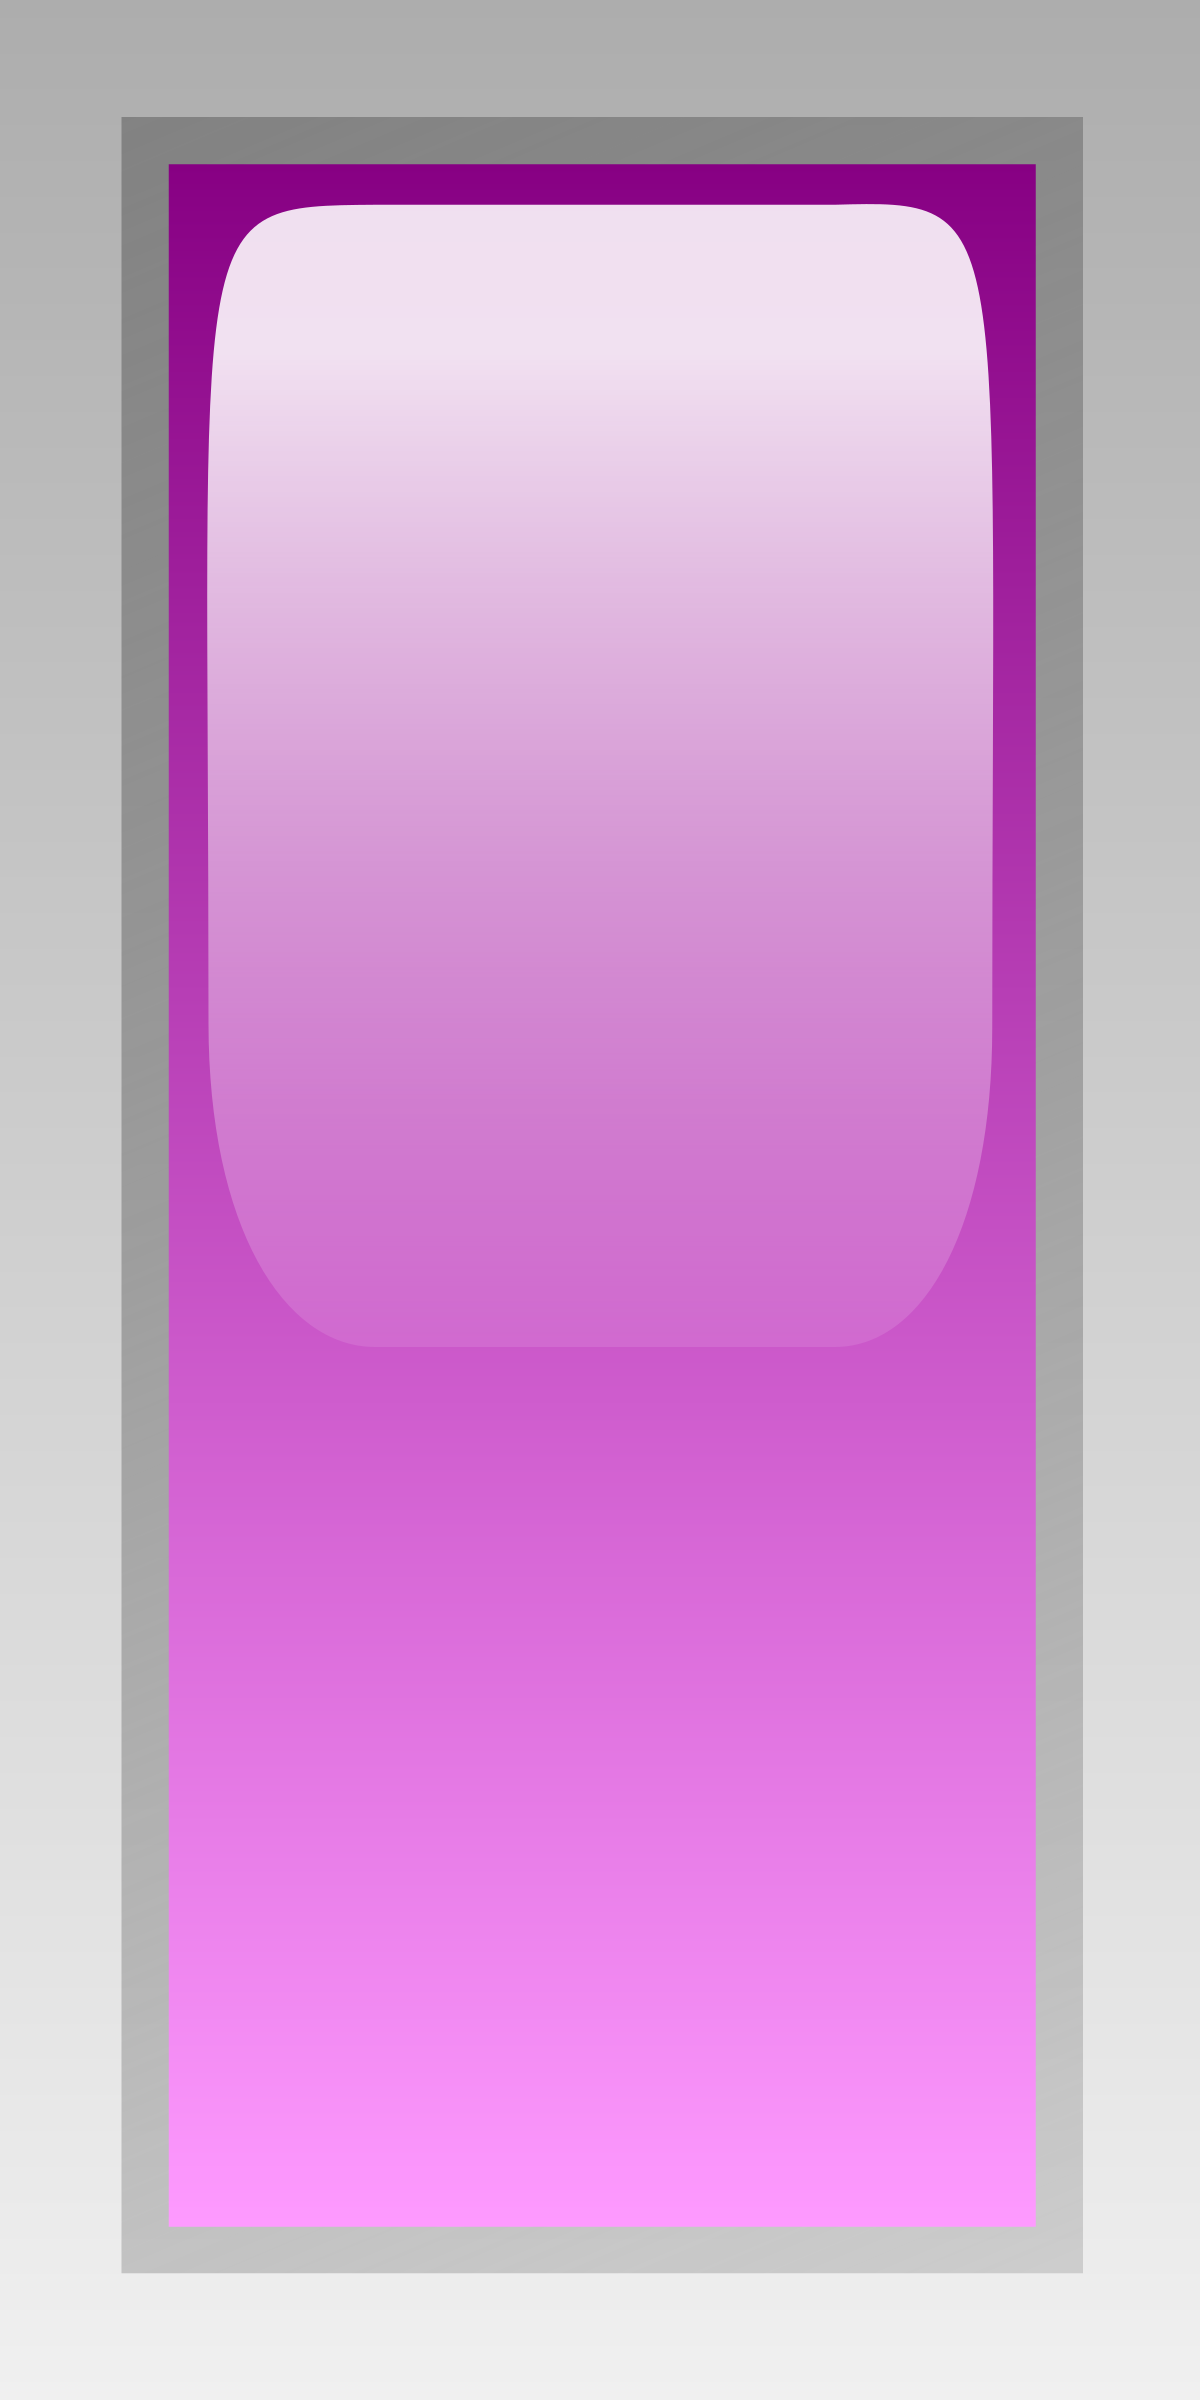 led rectangular v purple by jean_victor_balin